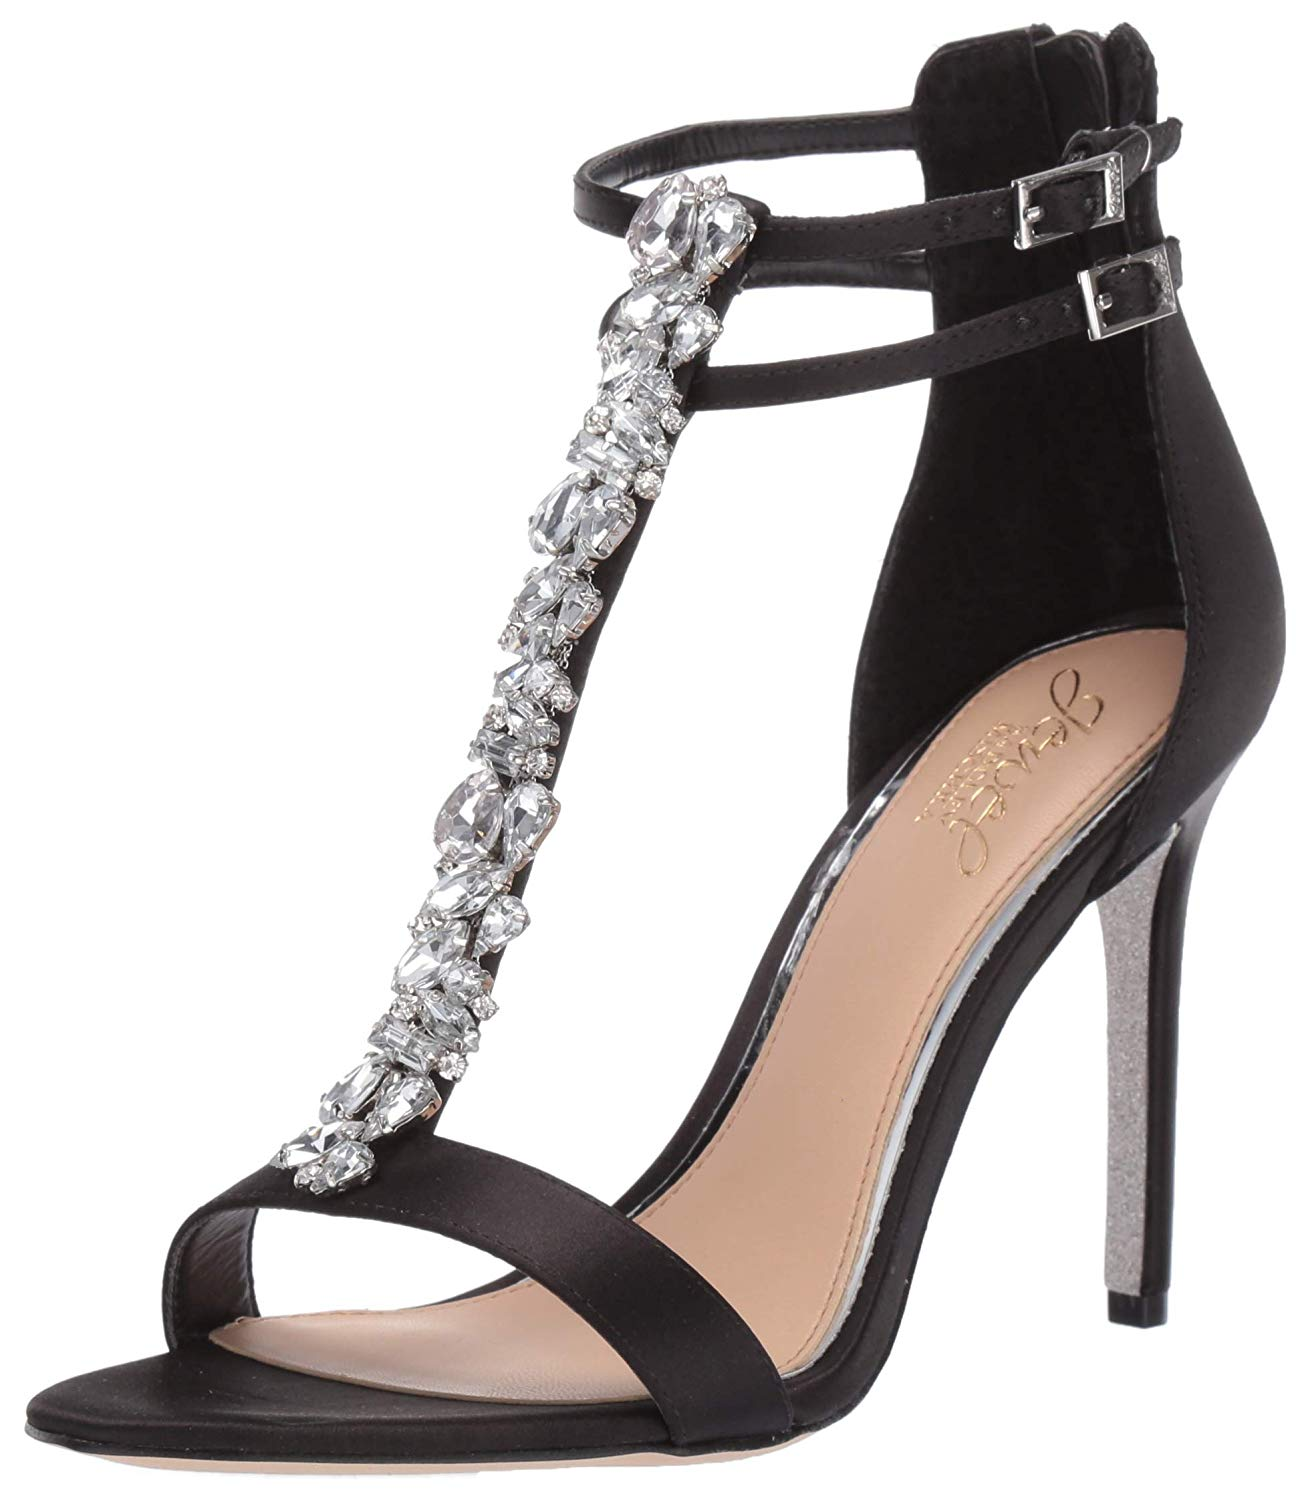 Badgley Mischka Jewel Daughtry Sandal 01